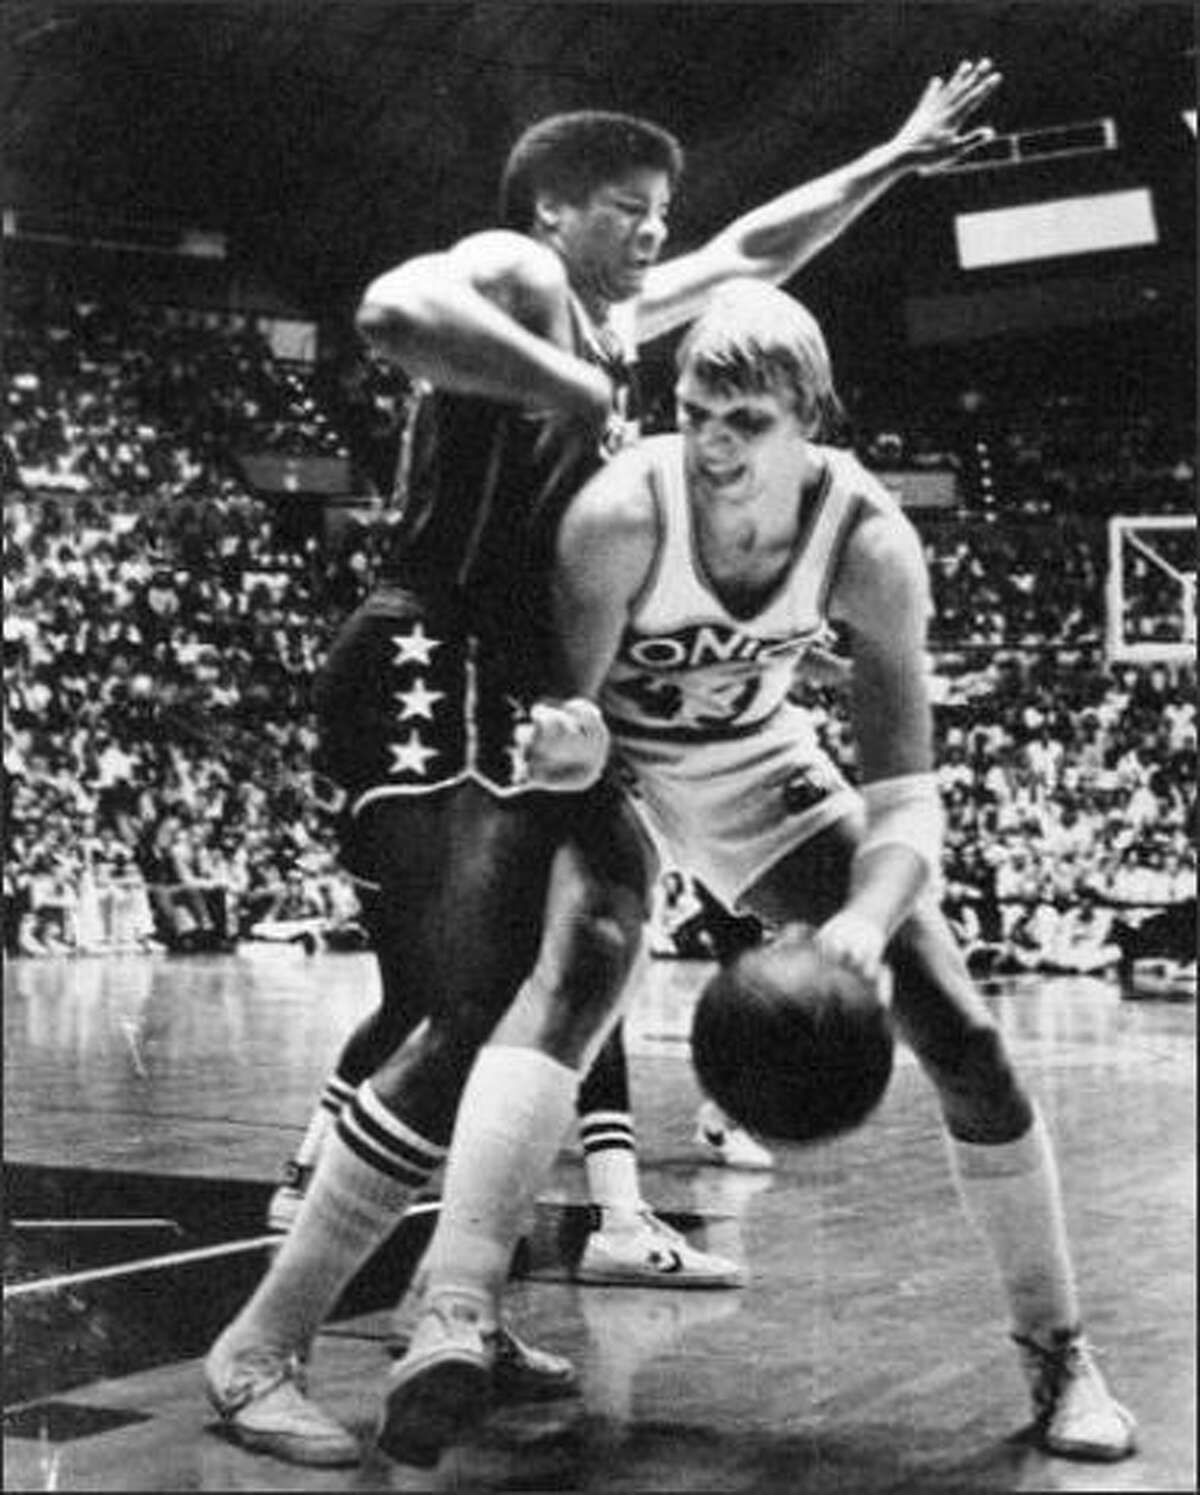 Sonics legend Jack Sikma has been selected into the 2019 Basketball Hall of Fame class.